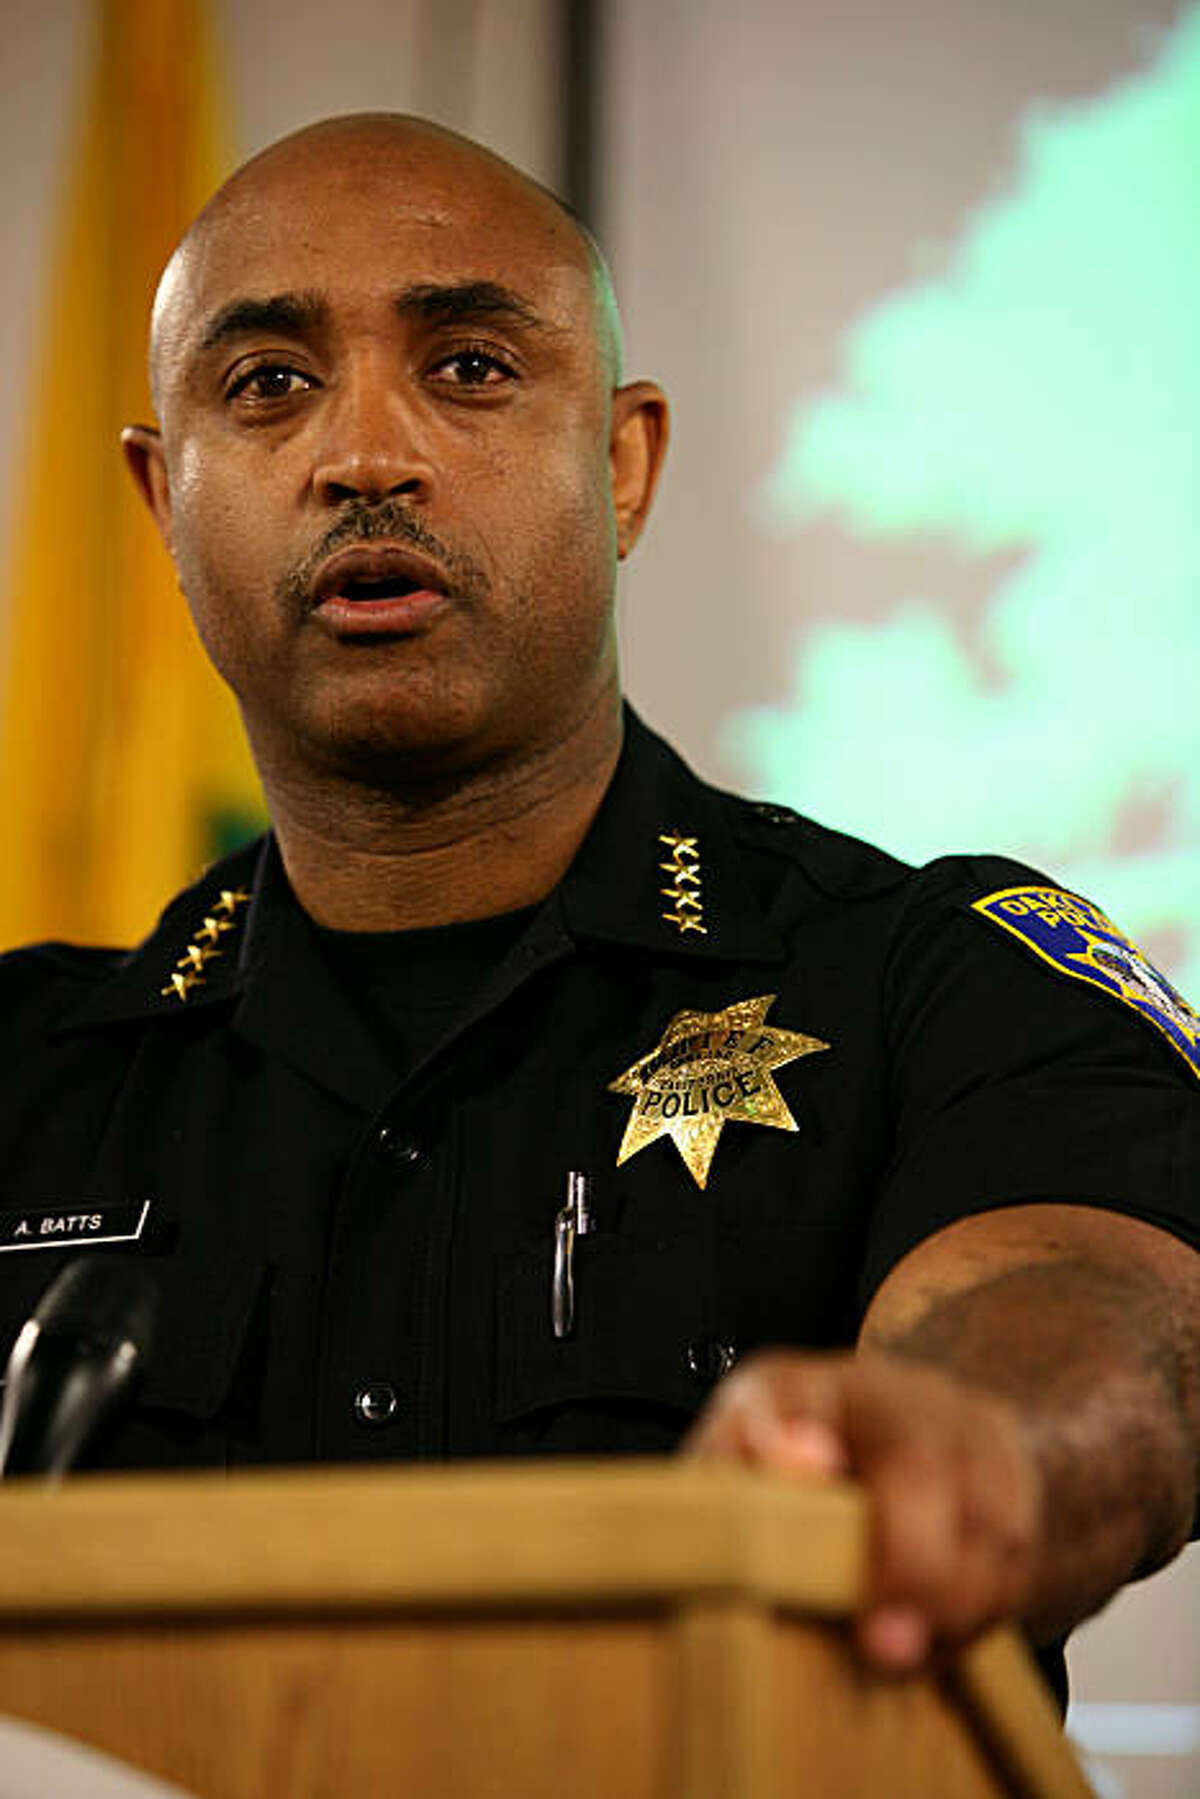 Oakland Police Chief Anthony Batts holds a press conference at the Emergency Operations Center to state that the majority of the demonstrations in Oakland have been peaceful following the Johannes Mehserle verdict on Thursday, July 8, 2010 in Oakland, Calif.